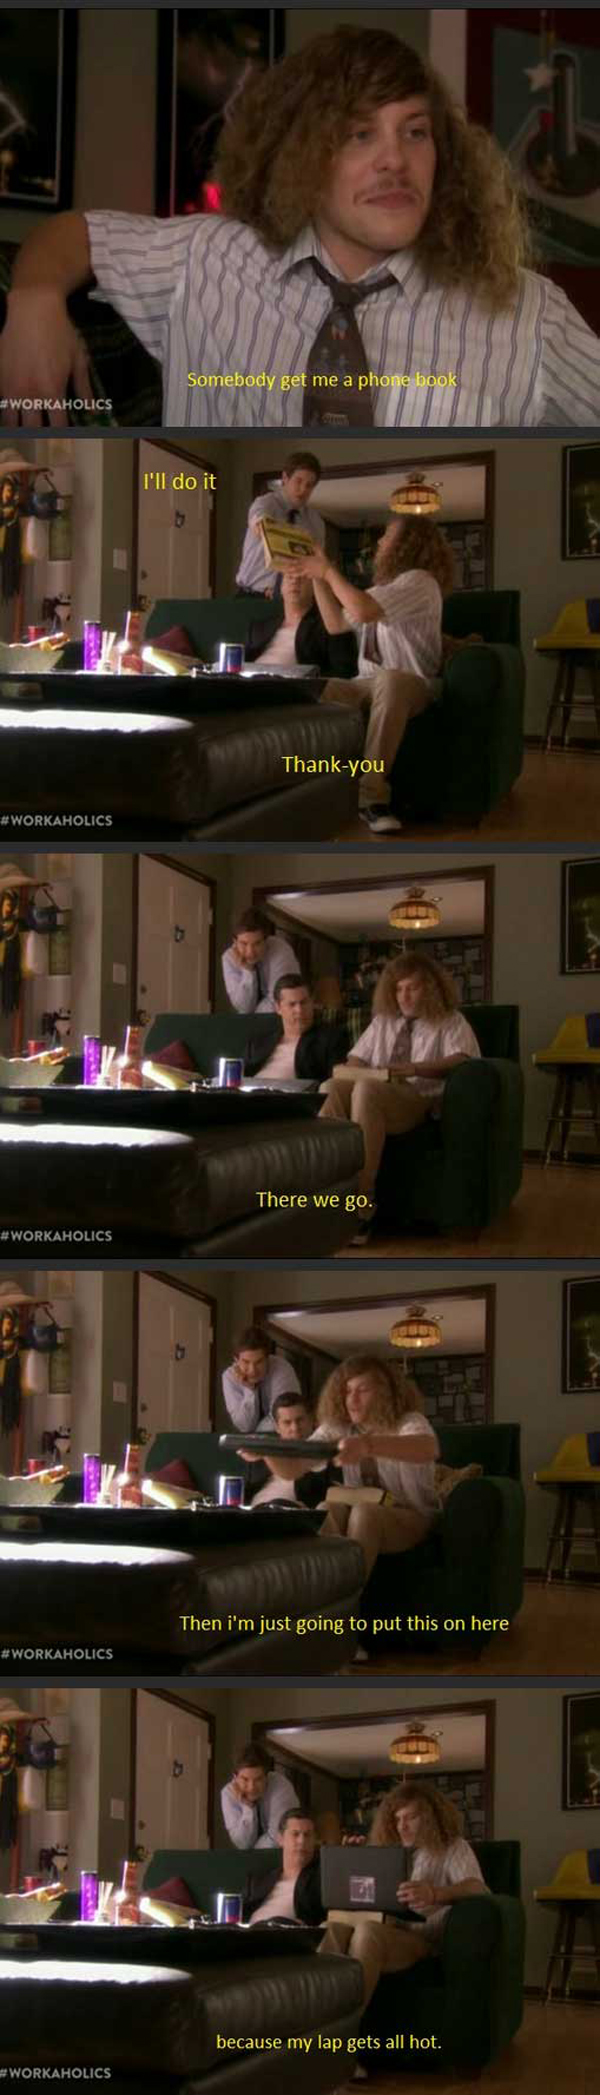 funny workaholics picture